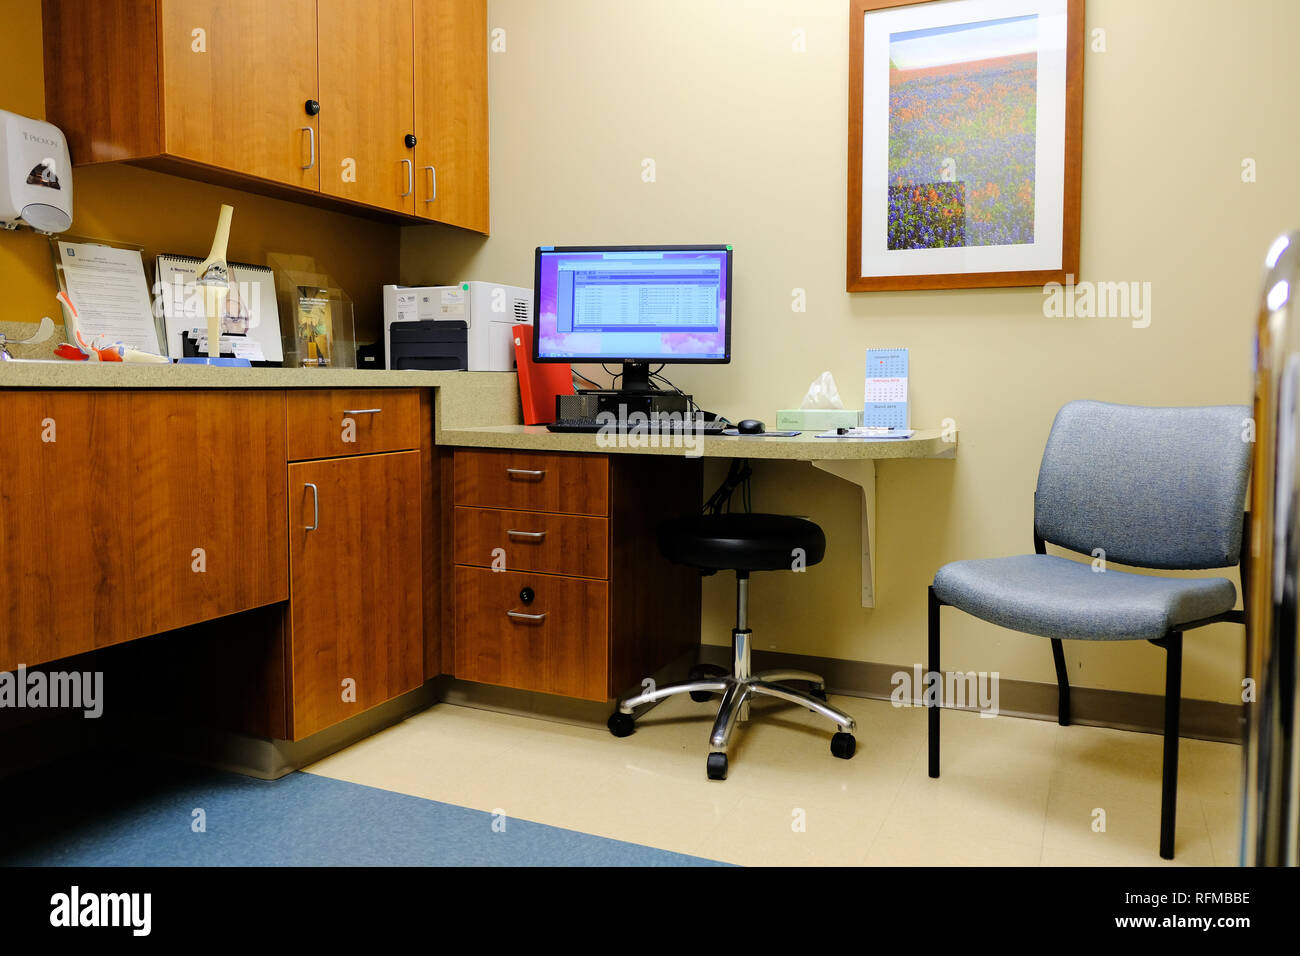 Interior of an orthopedic doctor's office without people. - Stock Image